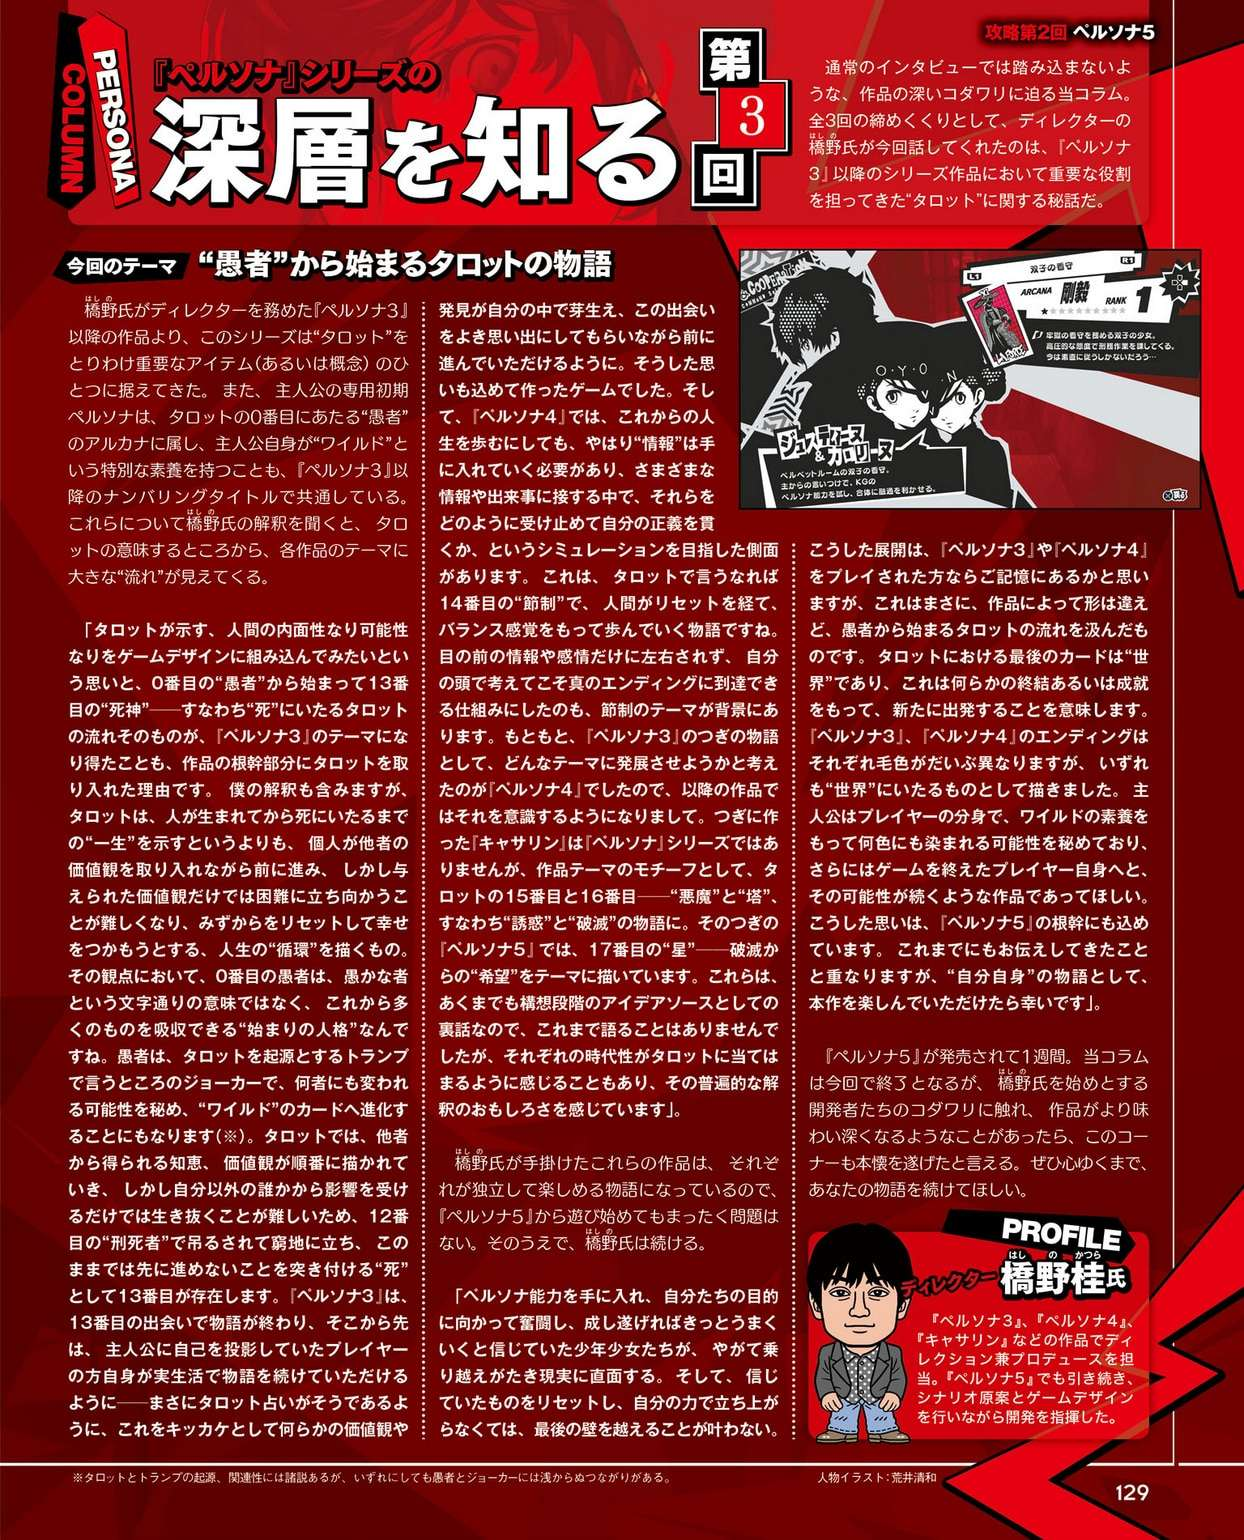 Persona 5 High-res Scans for Post-Launch Famitsu Feature